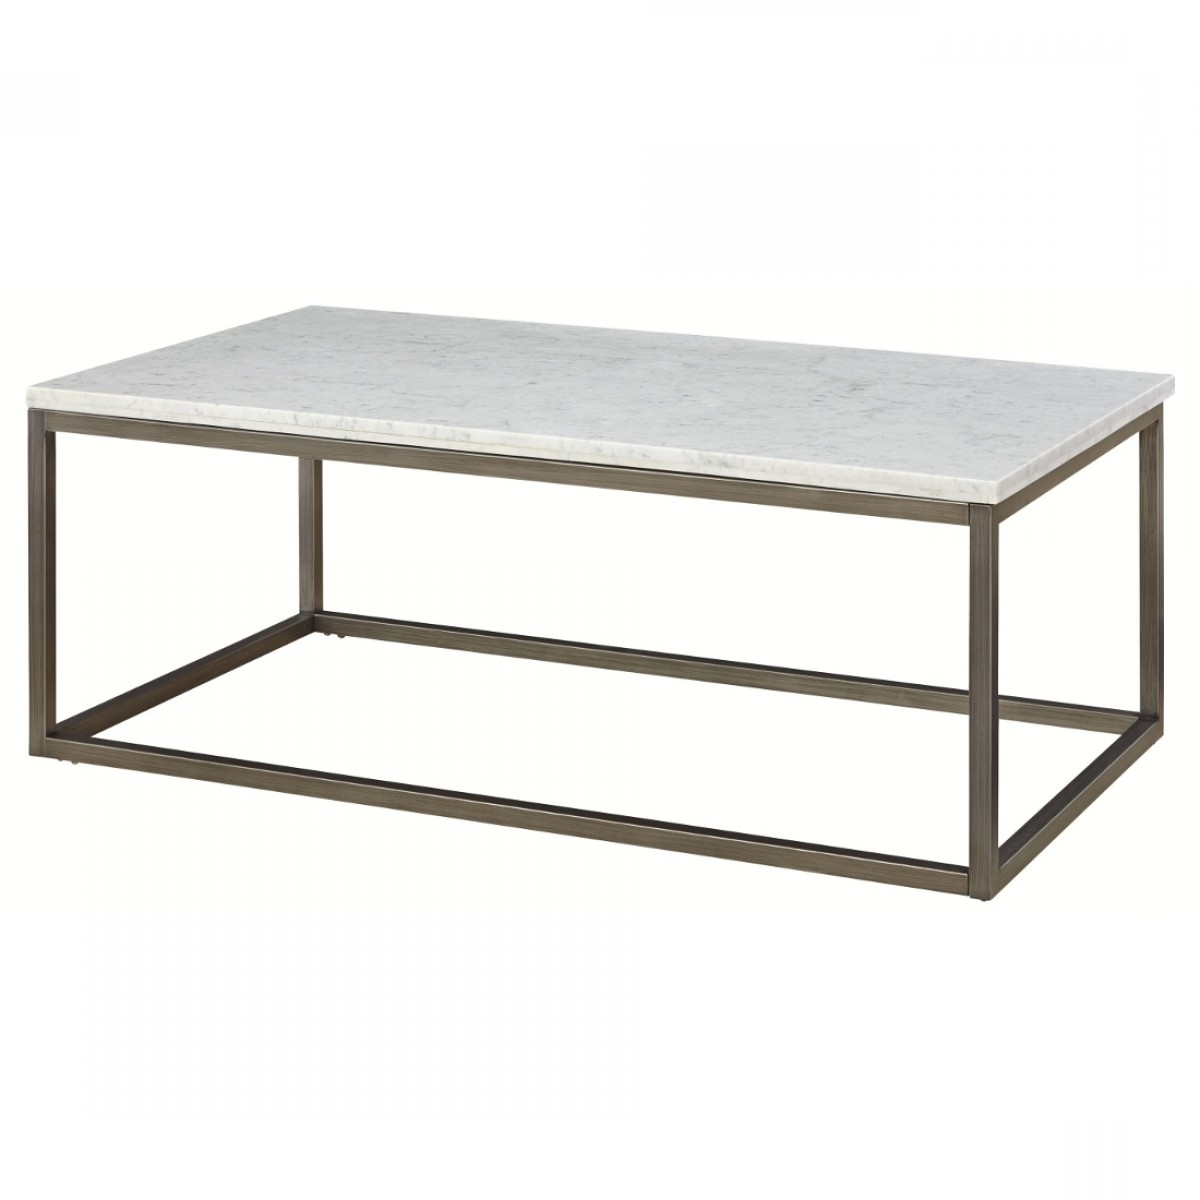 Well Known Intertwine Triangle Marble Coffee Tables Inside Alana Coffee Table Round White Marble Top – Coffee Table Ideas (View 7 of 20)